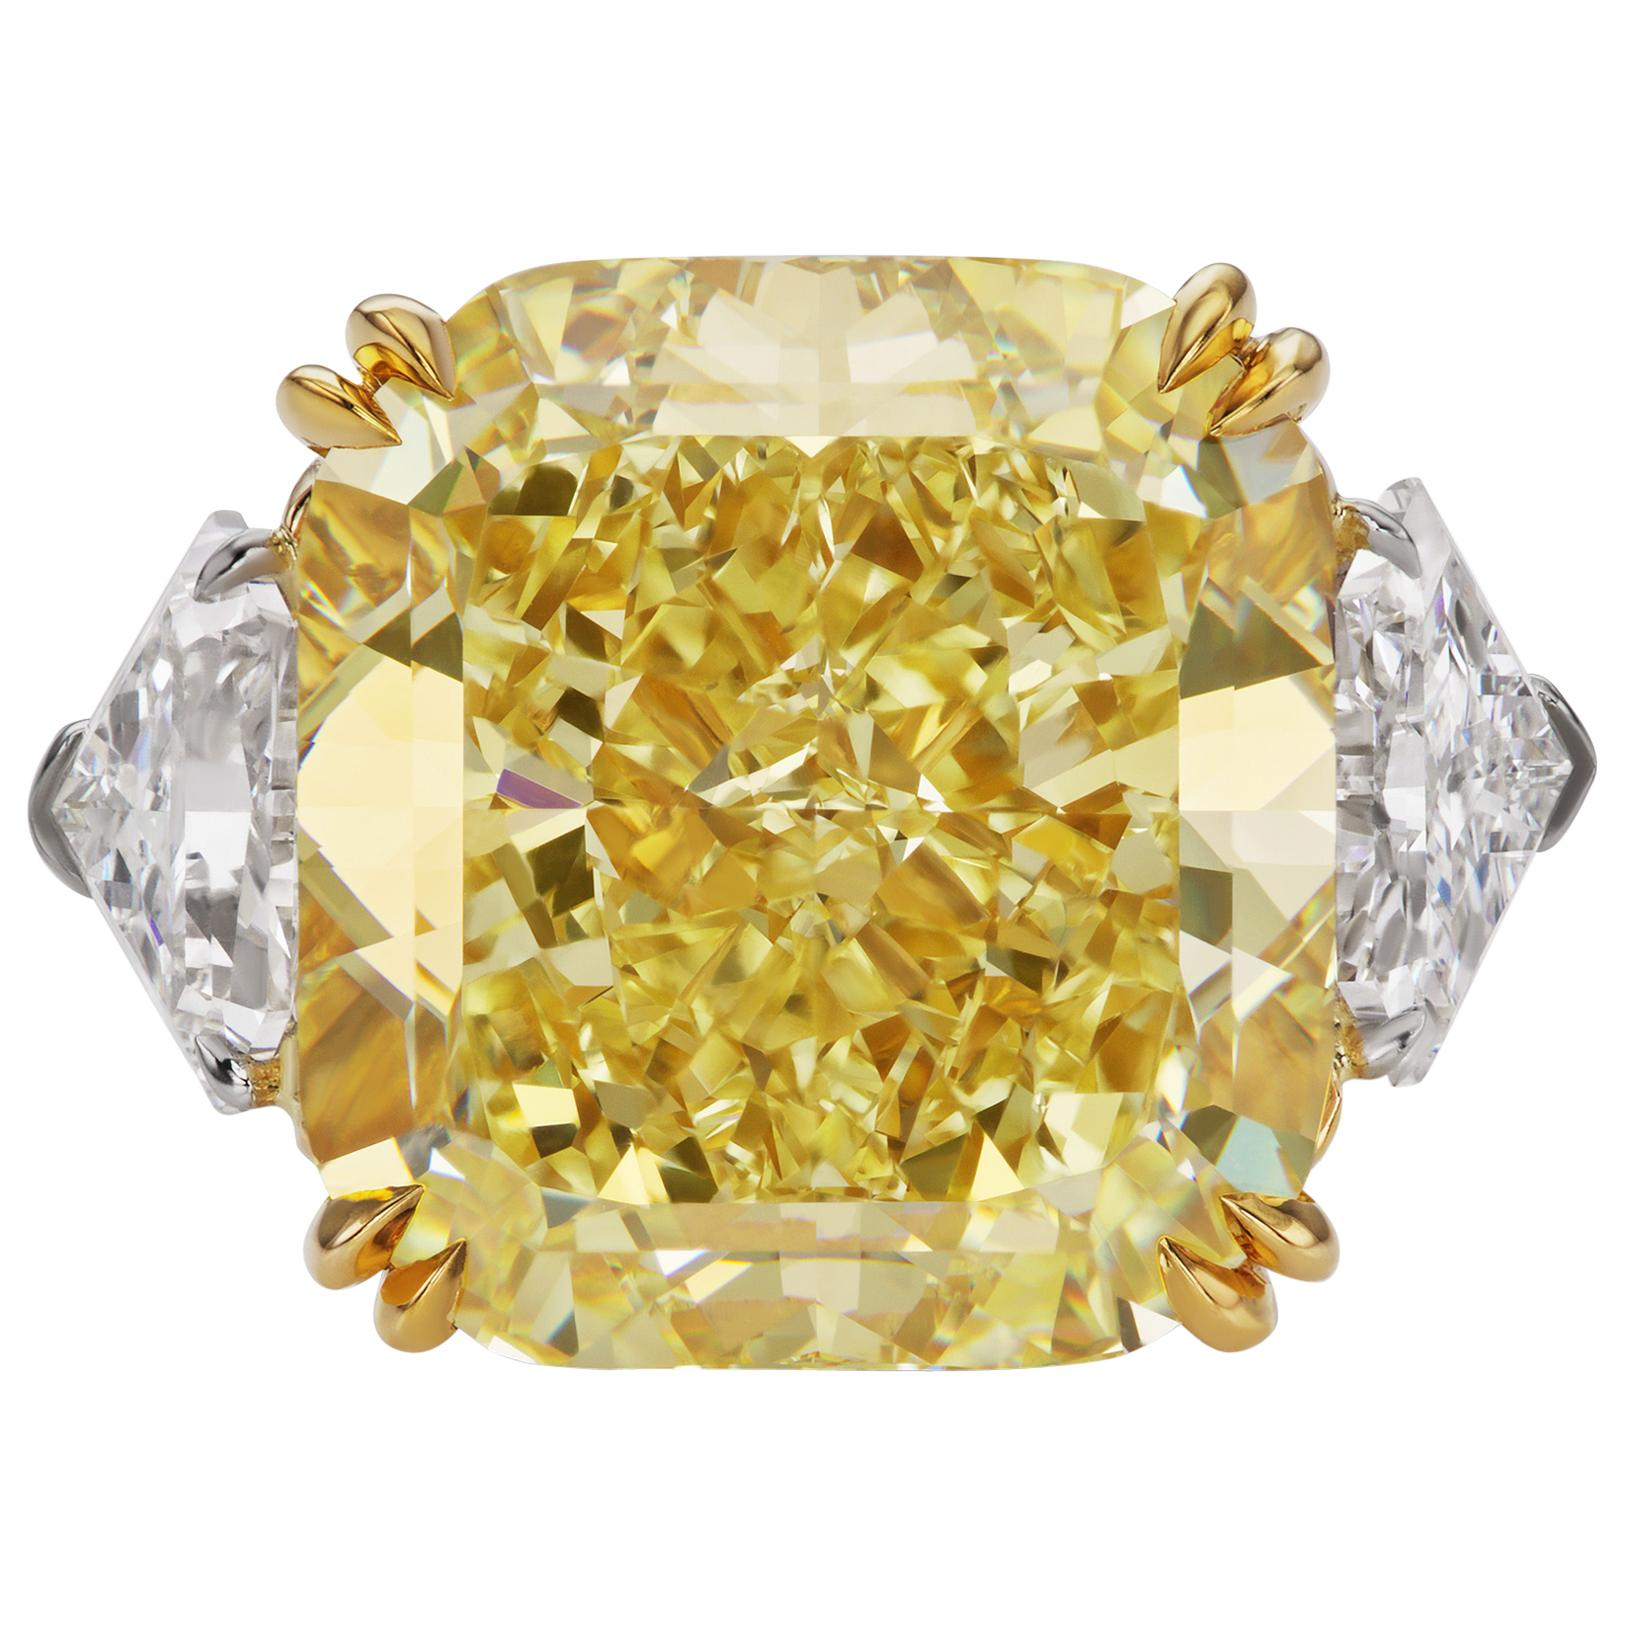 Scarselli 22 Carat Fancy Intense Yellow Diamond GIA in a Platinum Ring